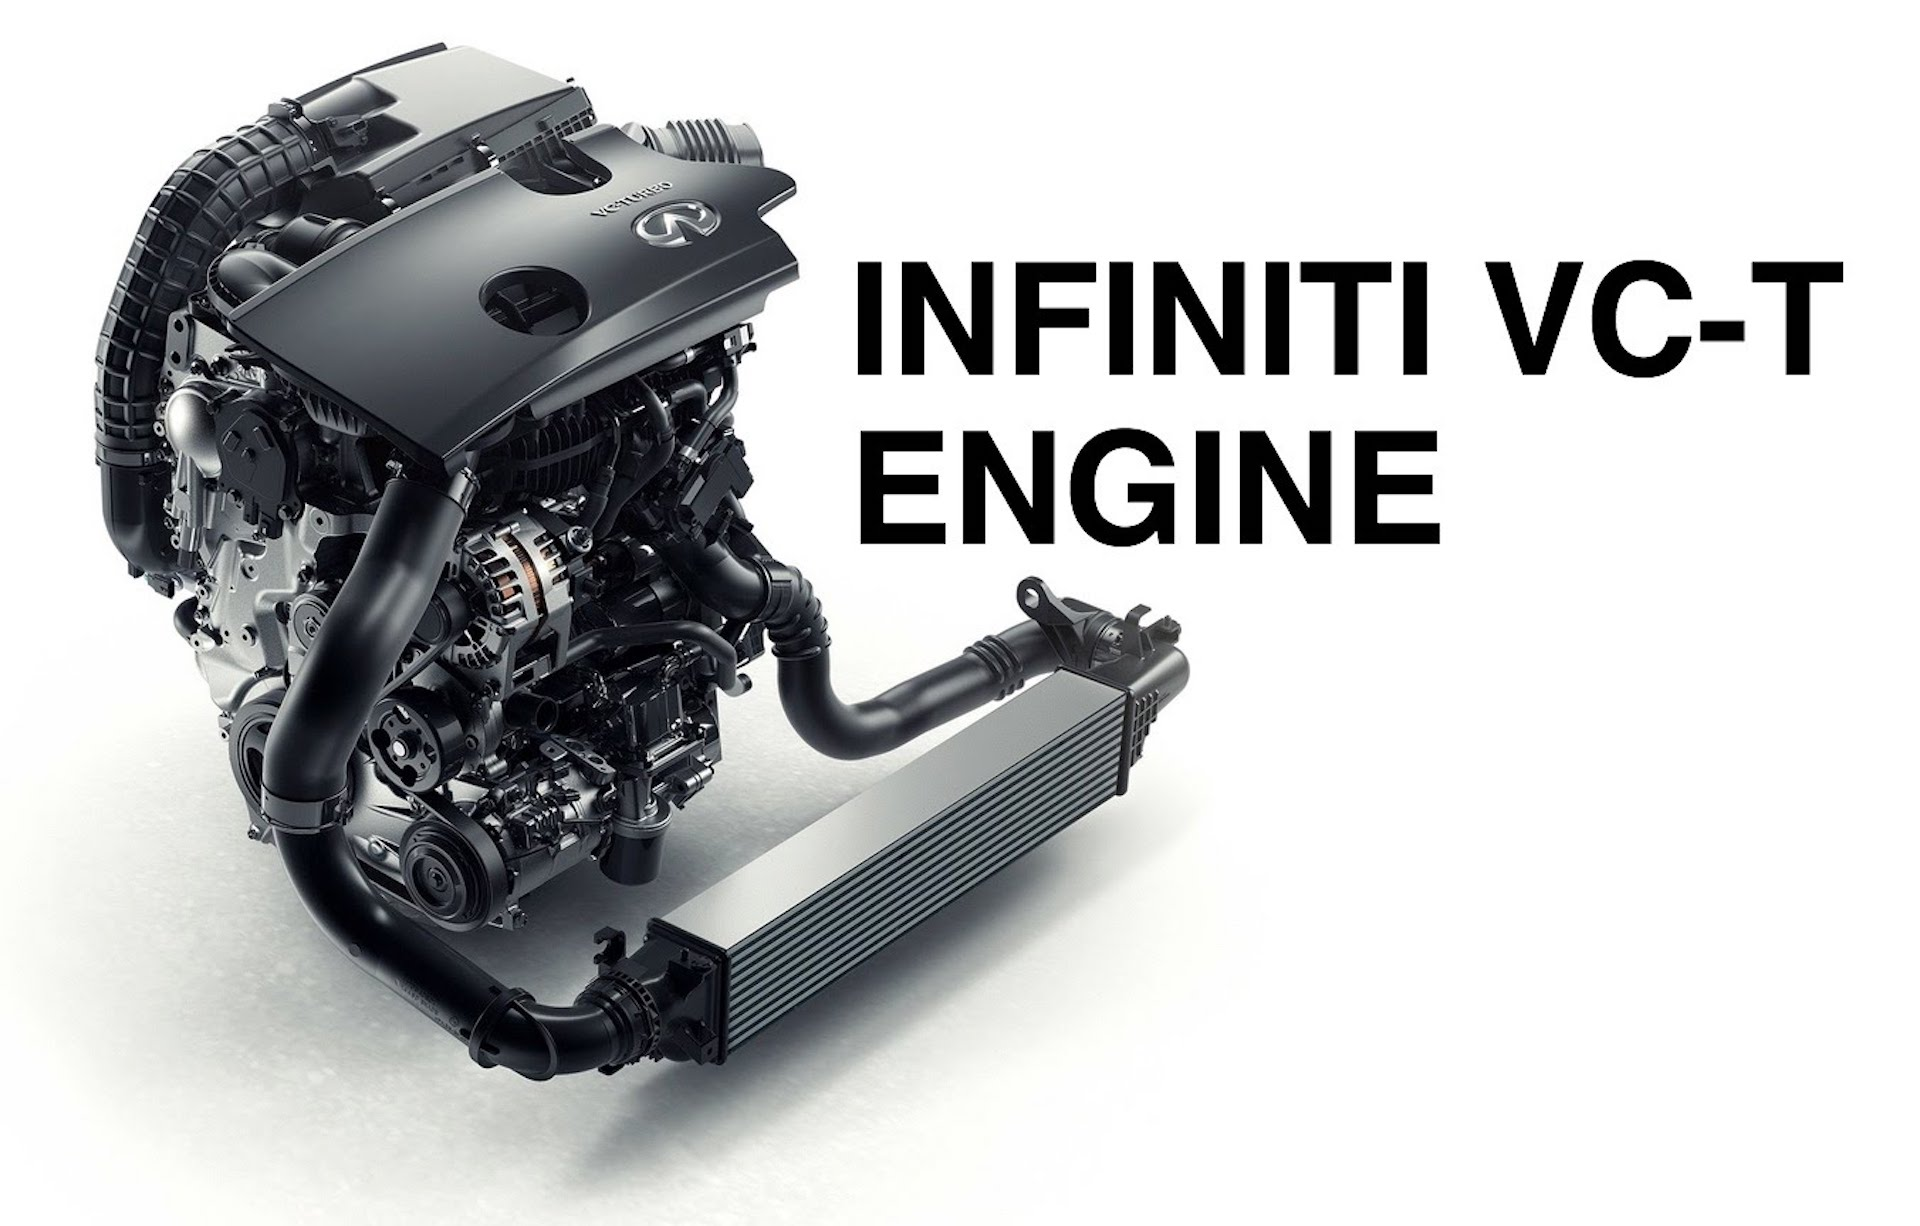 How Infiniti's variable compression engine works